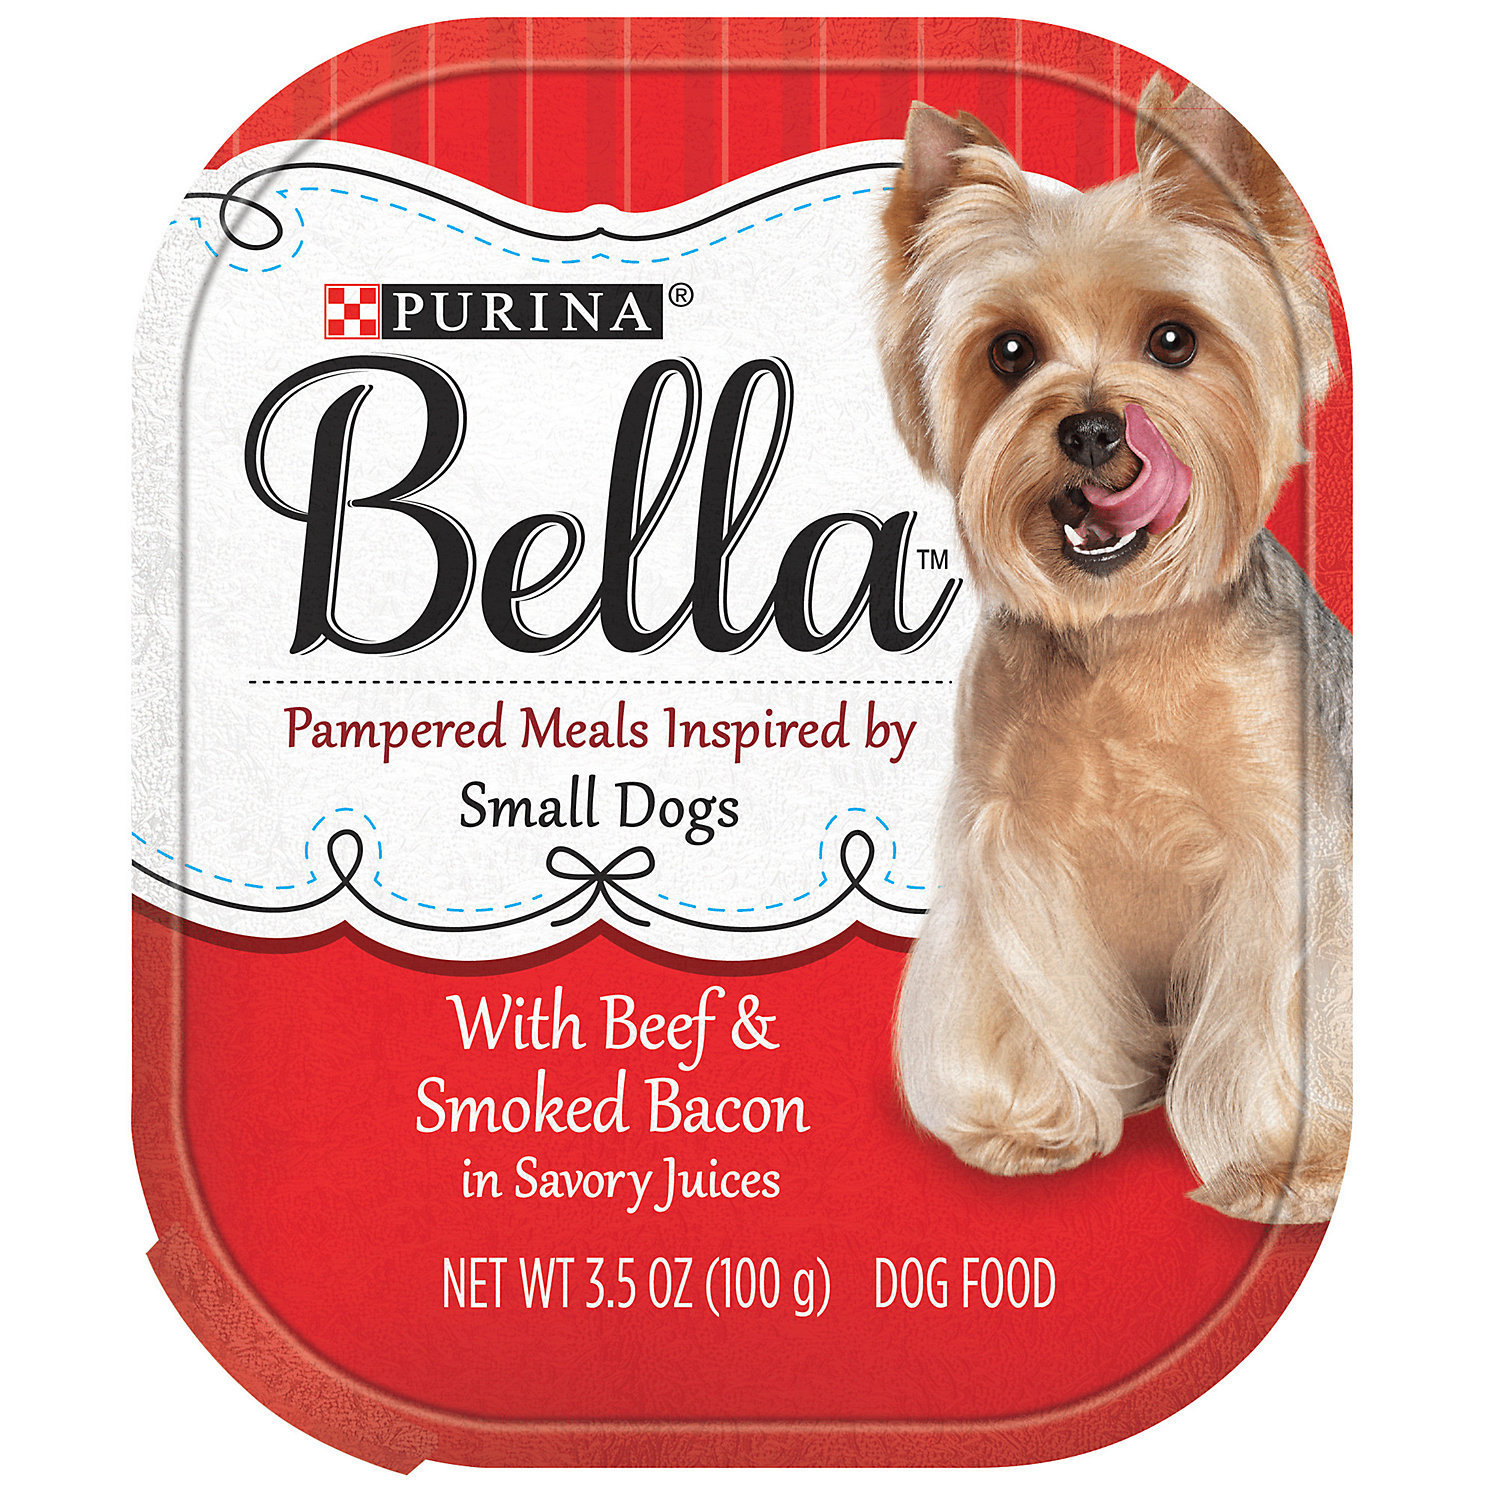 Purina Bella With Beef & Smoked Bacon in Savory Juices Adult Wet Dog Food, 12 x 3.5 oz (11/19) (A.H1)